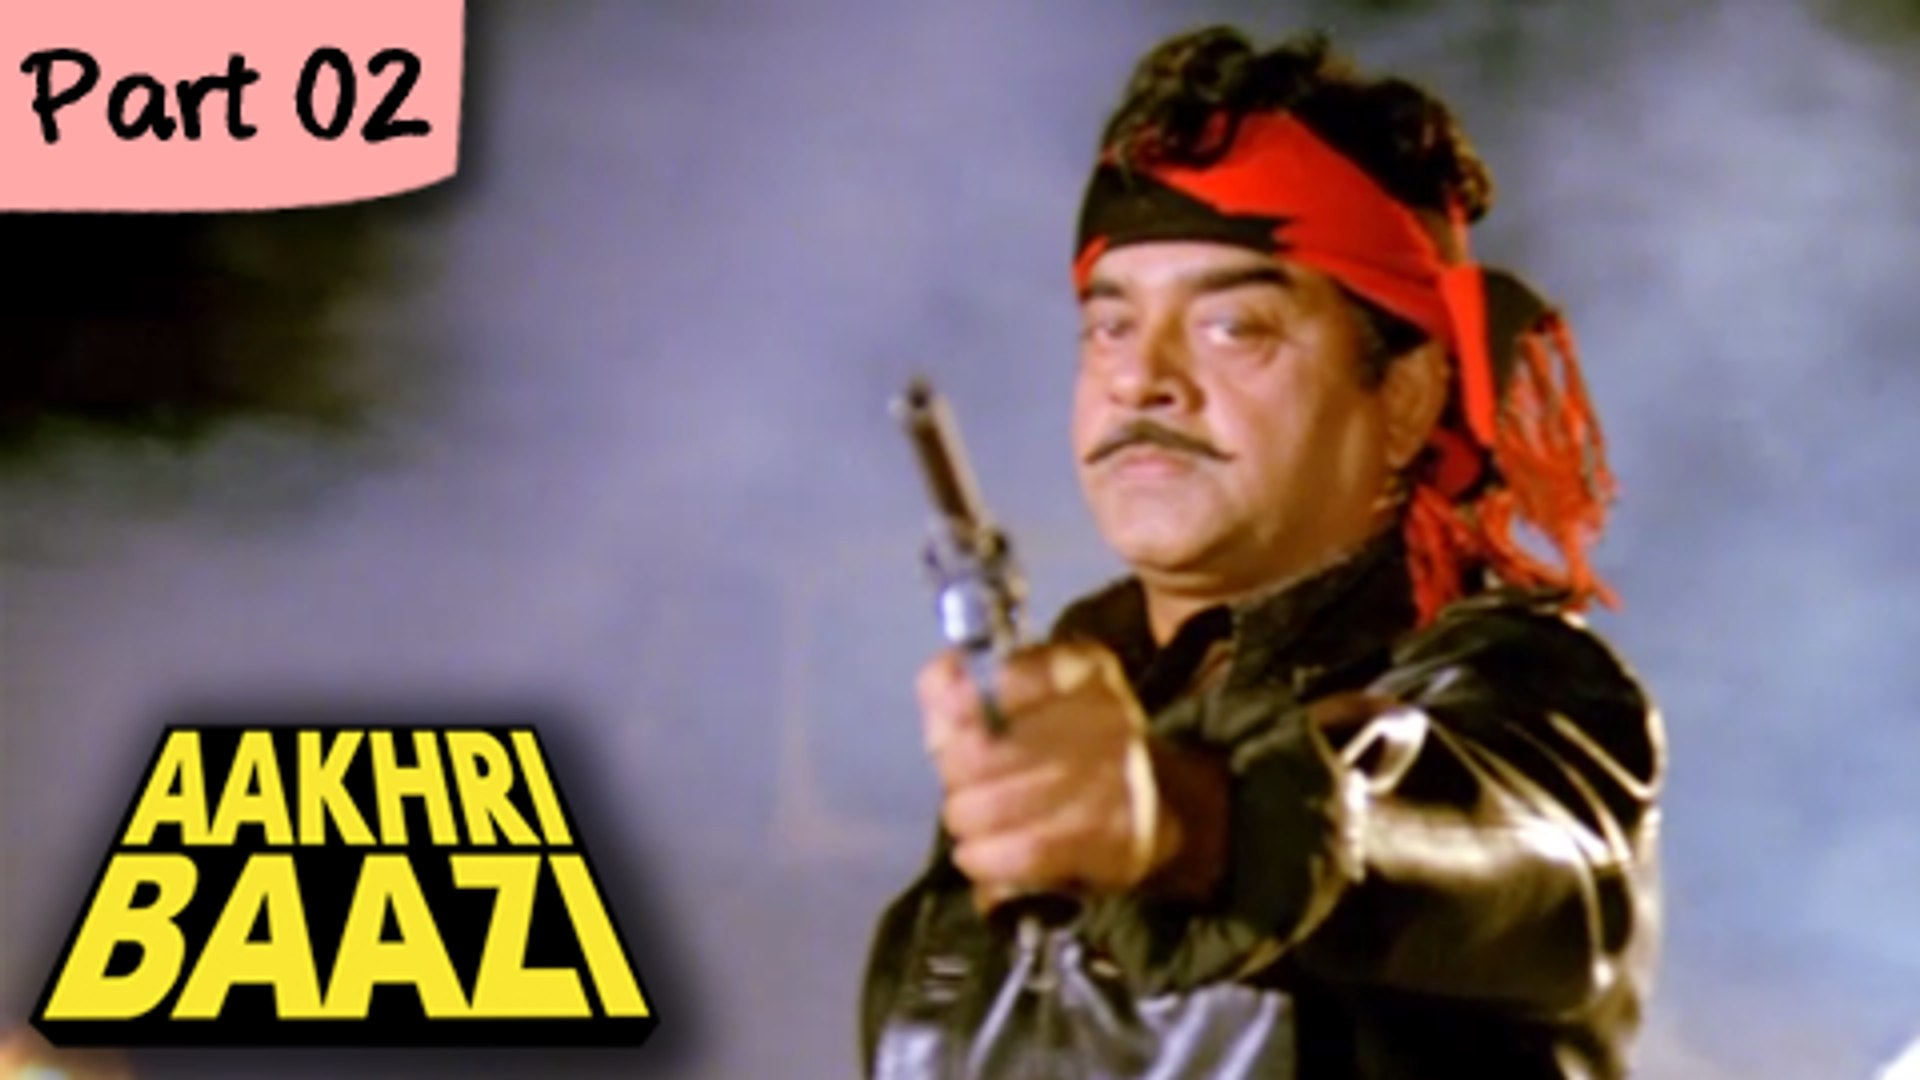 Aakhri Baazi - Part 02/13 - Bollywood Hit Romantic Action Movie - Govinda, Shatrughan Sinha